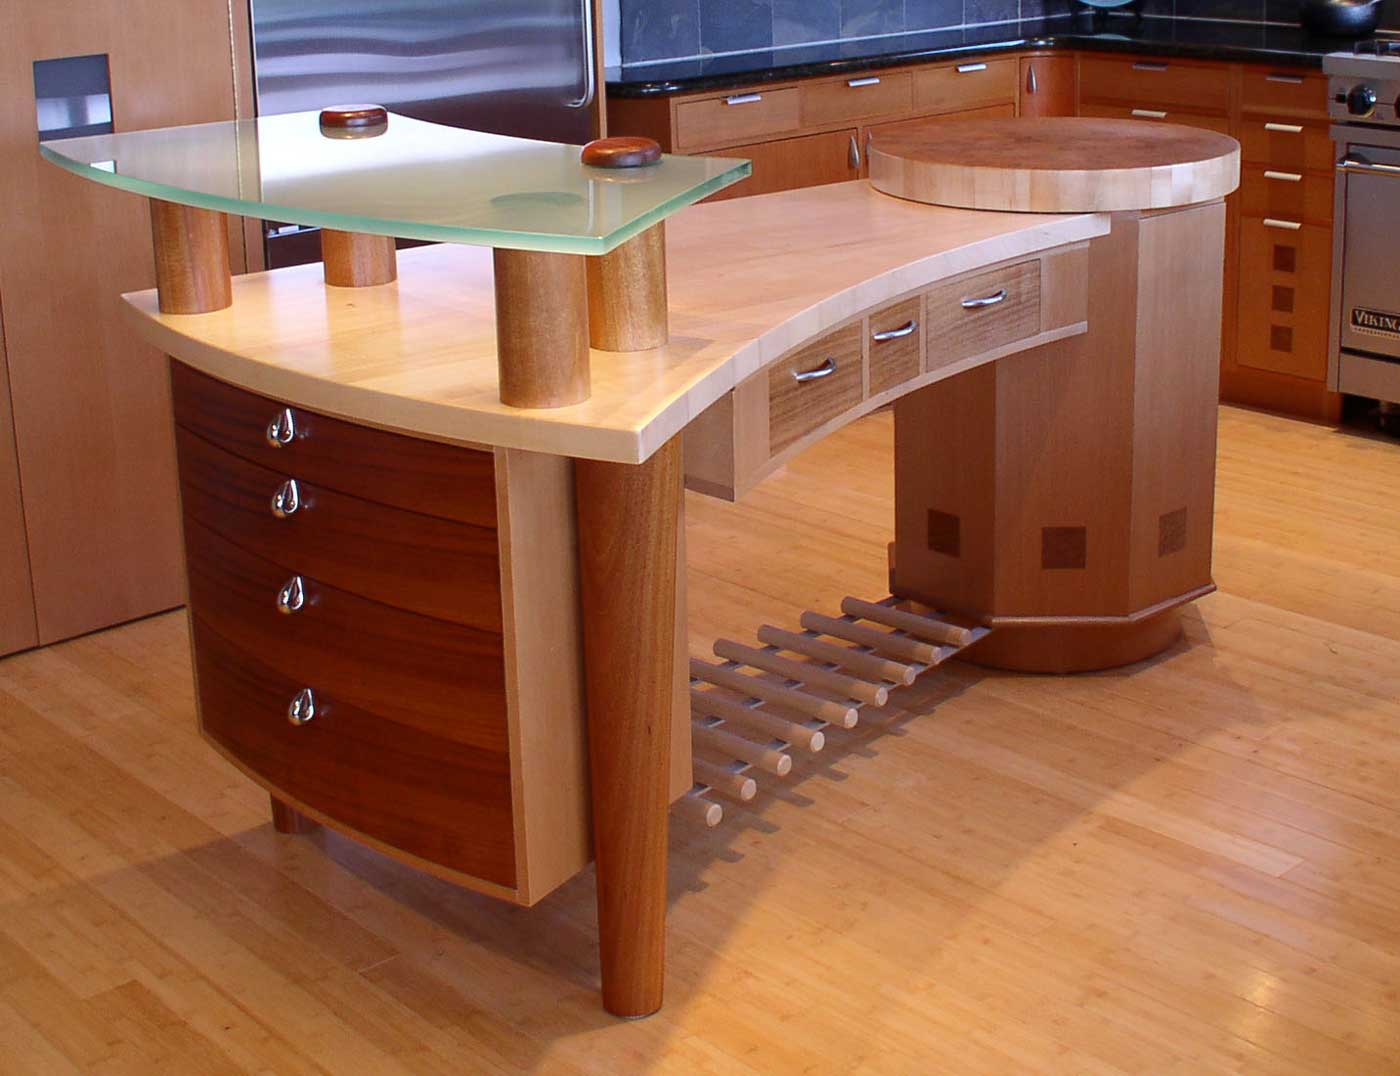 Office furniture boulder ideas Unique wooden furniture